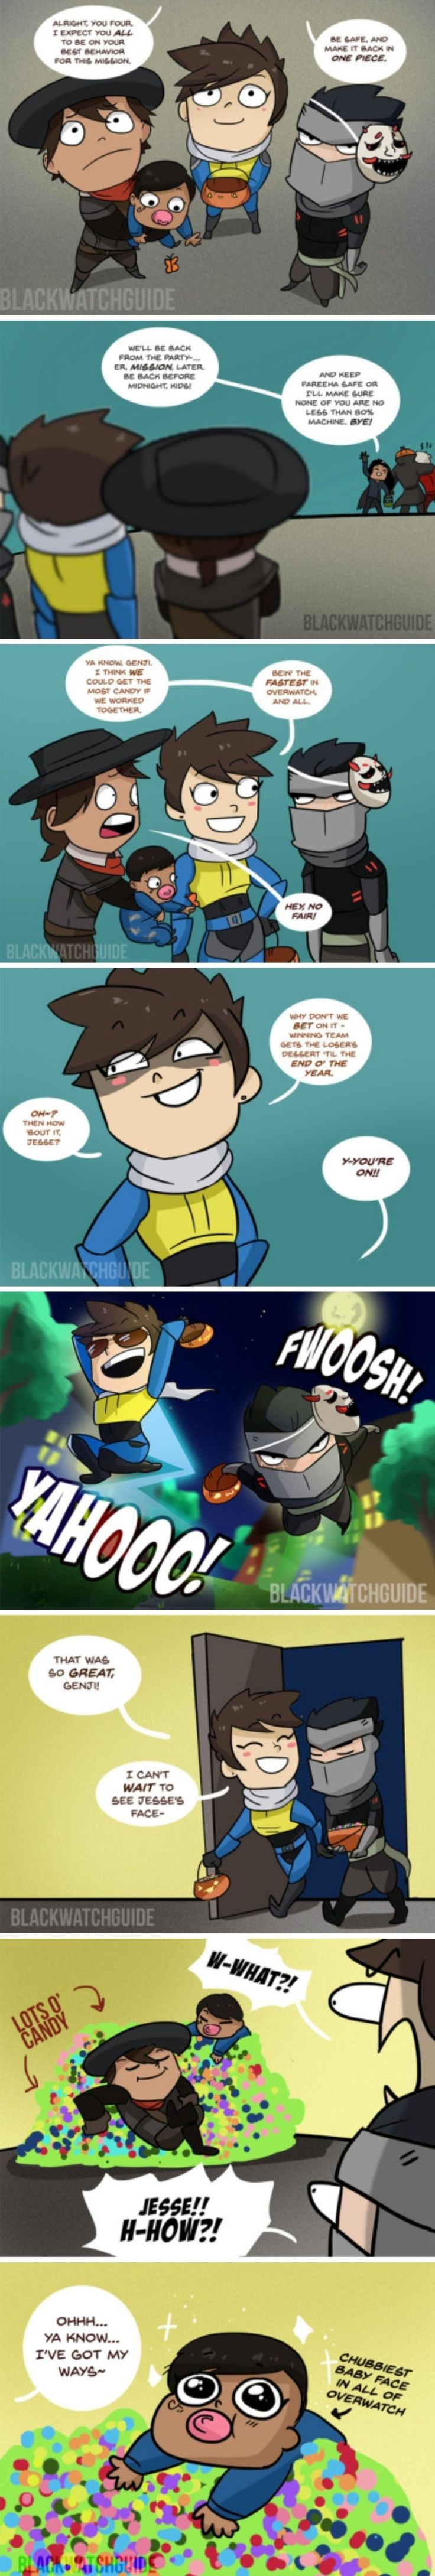 Overwatch comic - Overwatch and Blackwatch Kids